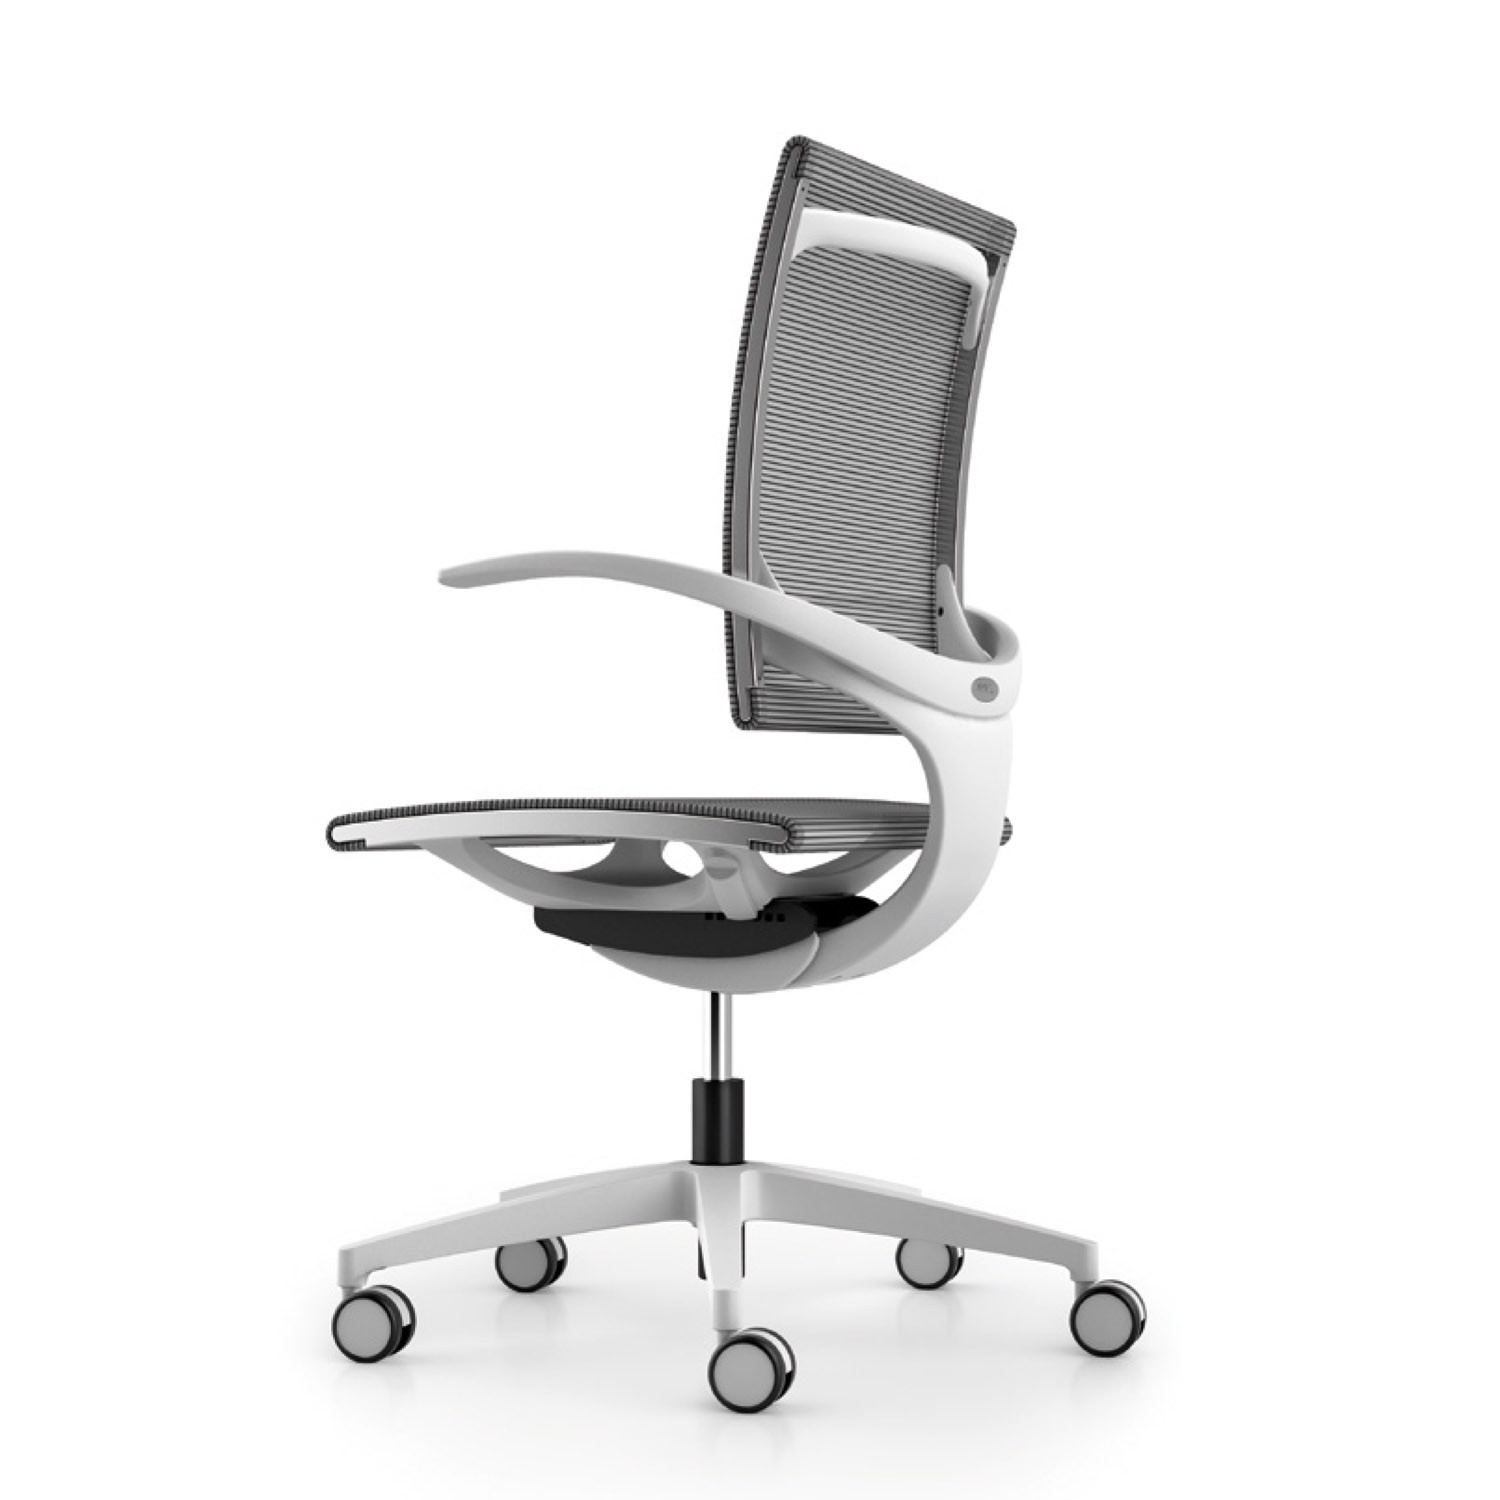 Bloss Ergonomic Task Chair by Ballendat